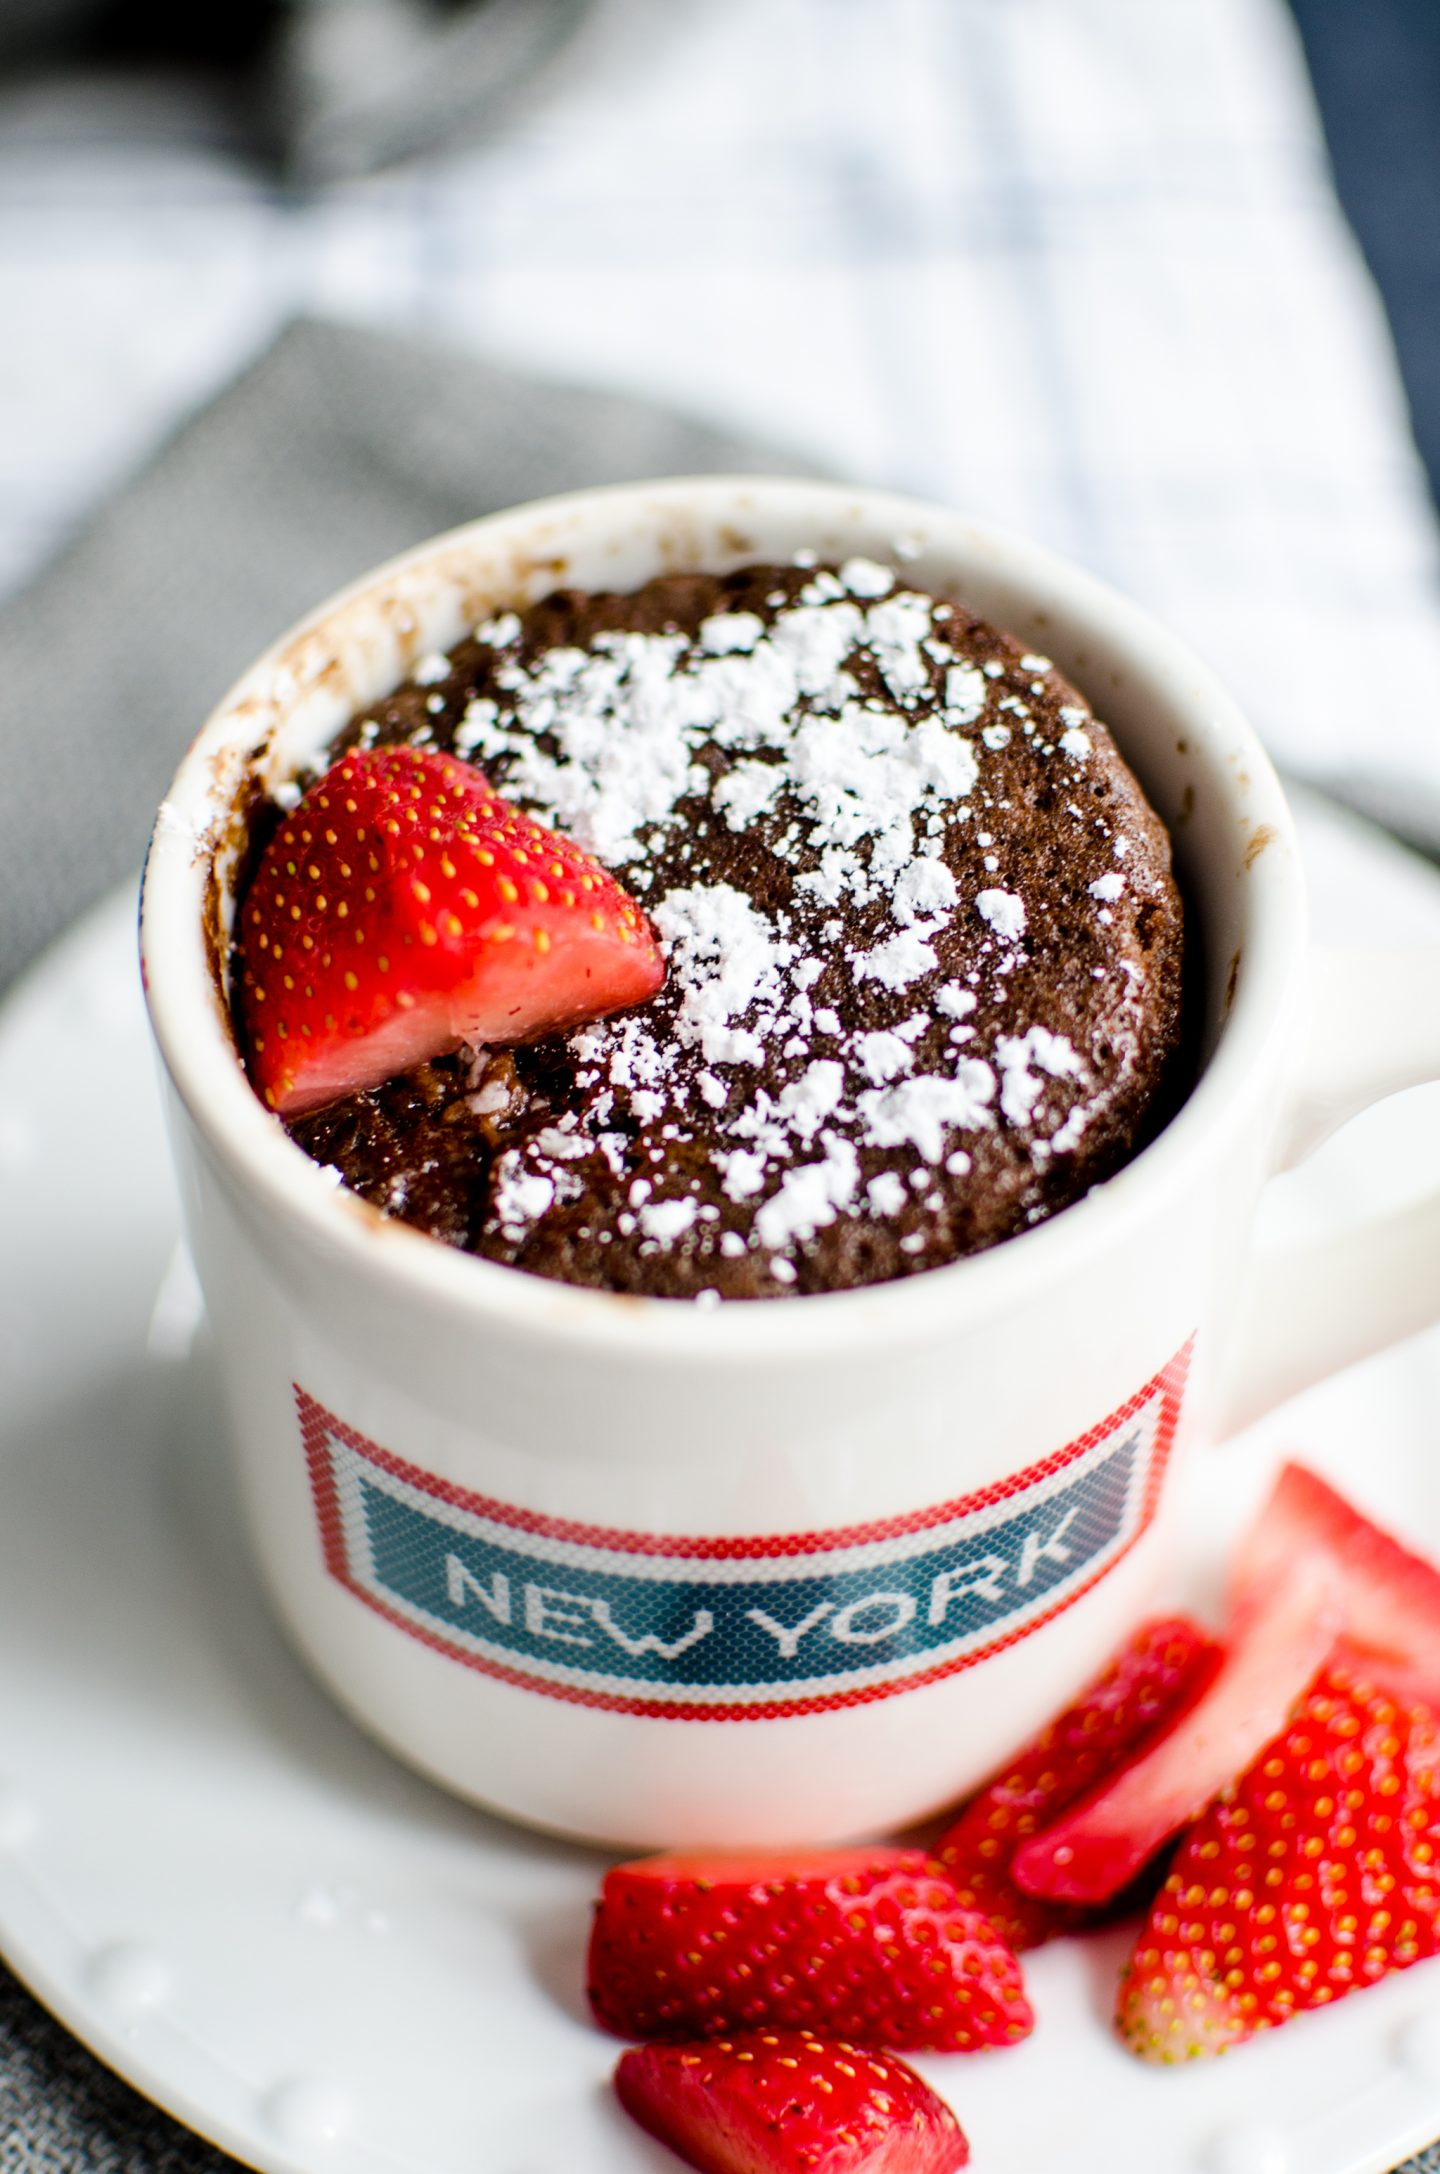 You have to try these 15 mug cake recipes, so many different varieties from snickerdoodle mug cakes to s'mores mug cake. Absolutely obsessed with how easy these mug cake recipes are. Healthy and ready in minutes!